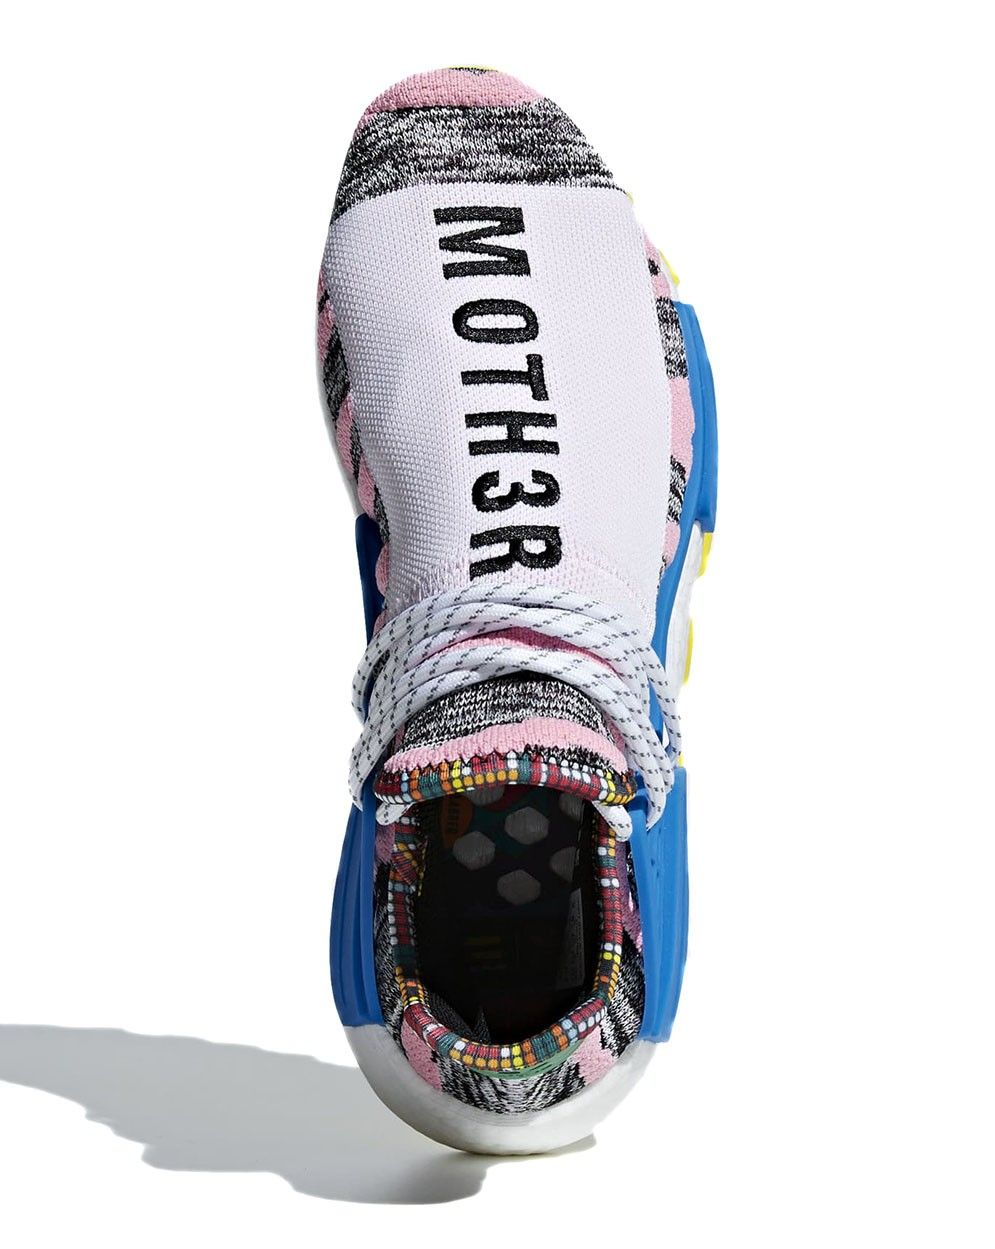 76c7d01a5 Factory Direct Prices Pharrell x adidas Afro NMD Hu Pack BB9531 Shoes Mens  Hi-Res